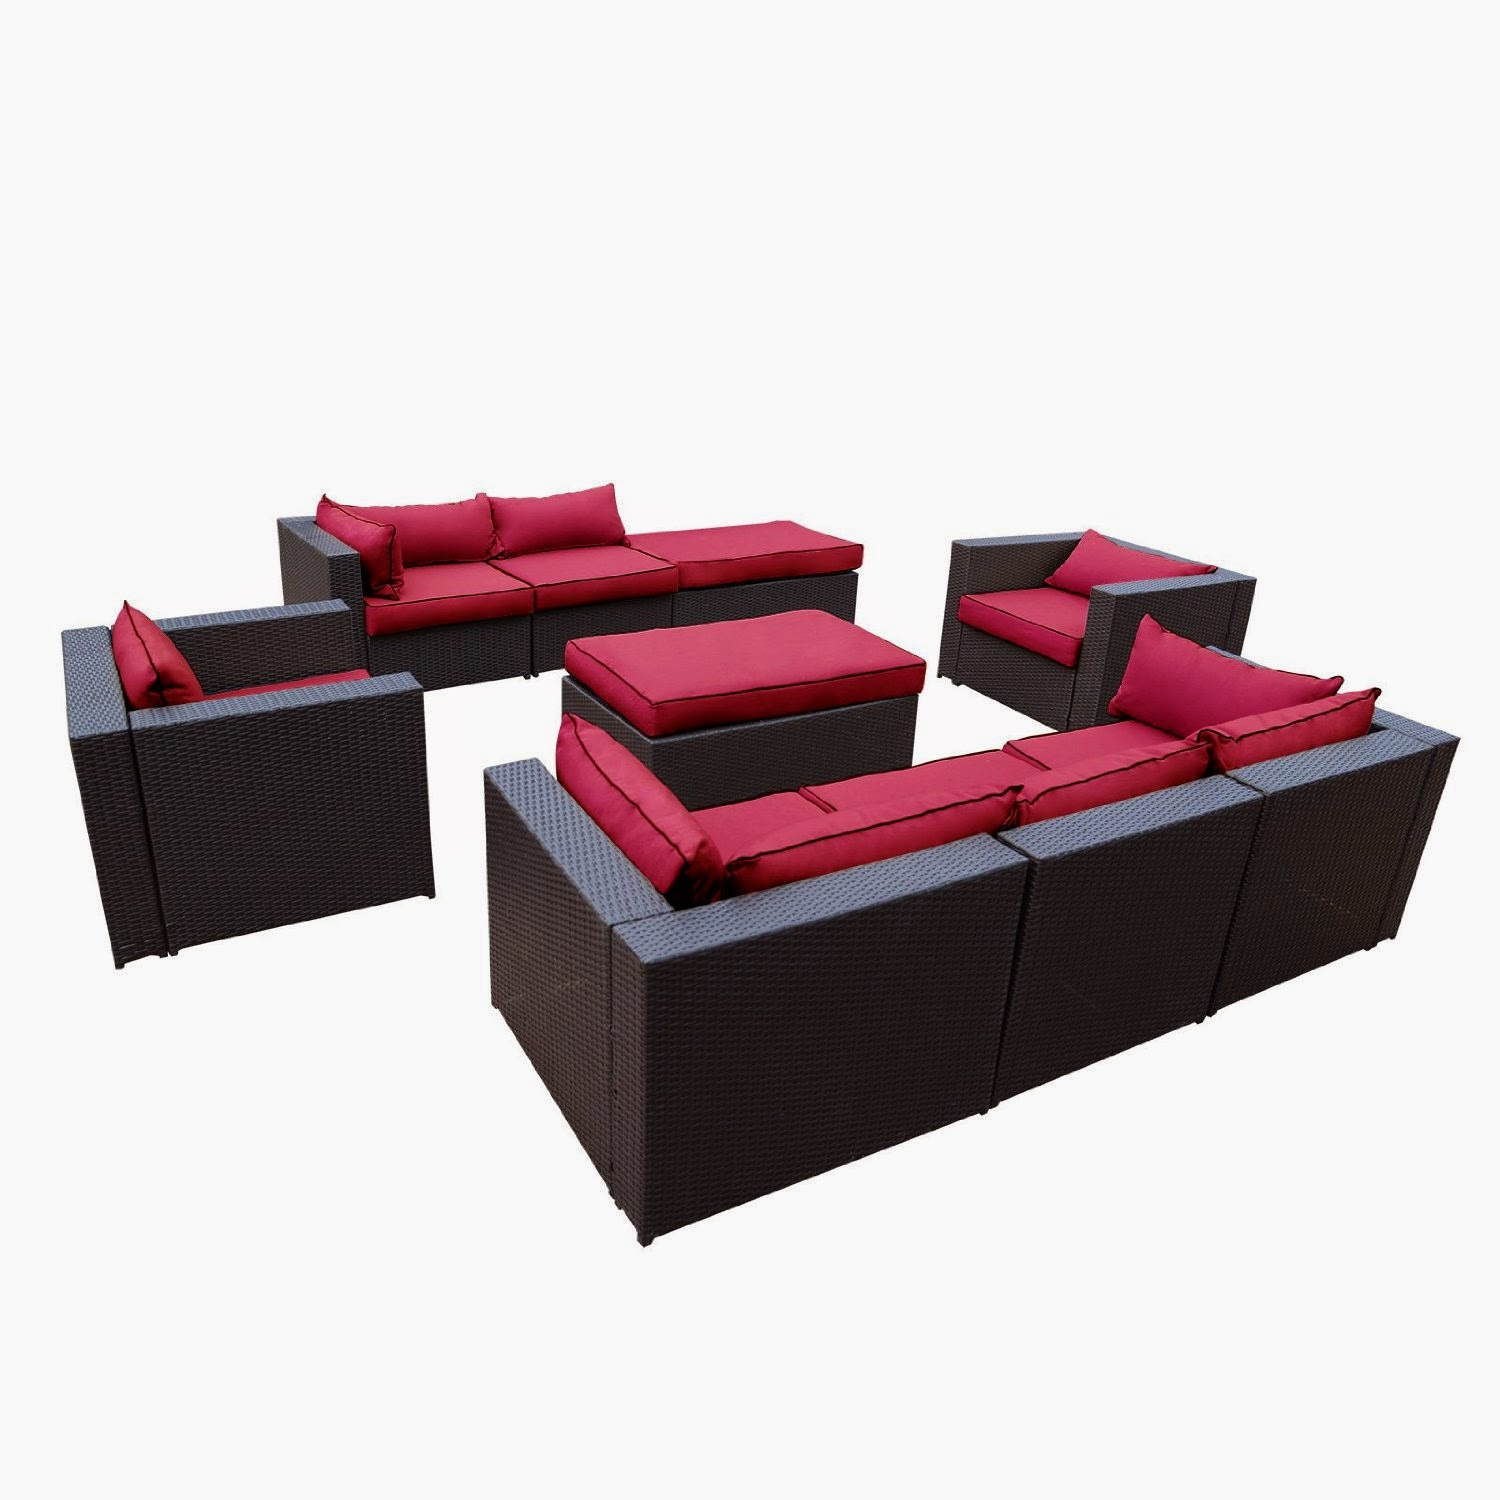 outdoor patio rattan wicker furniture sectional sofa. Black Bedroom Furniture Sets. Home Design Ideas